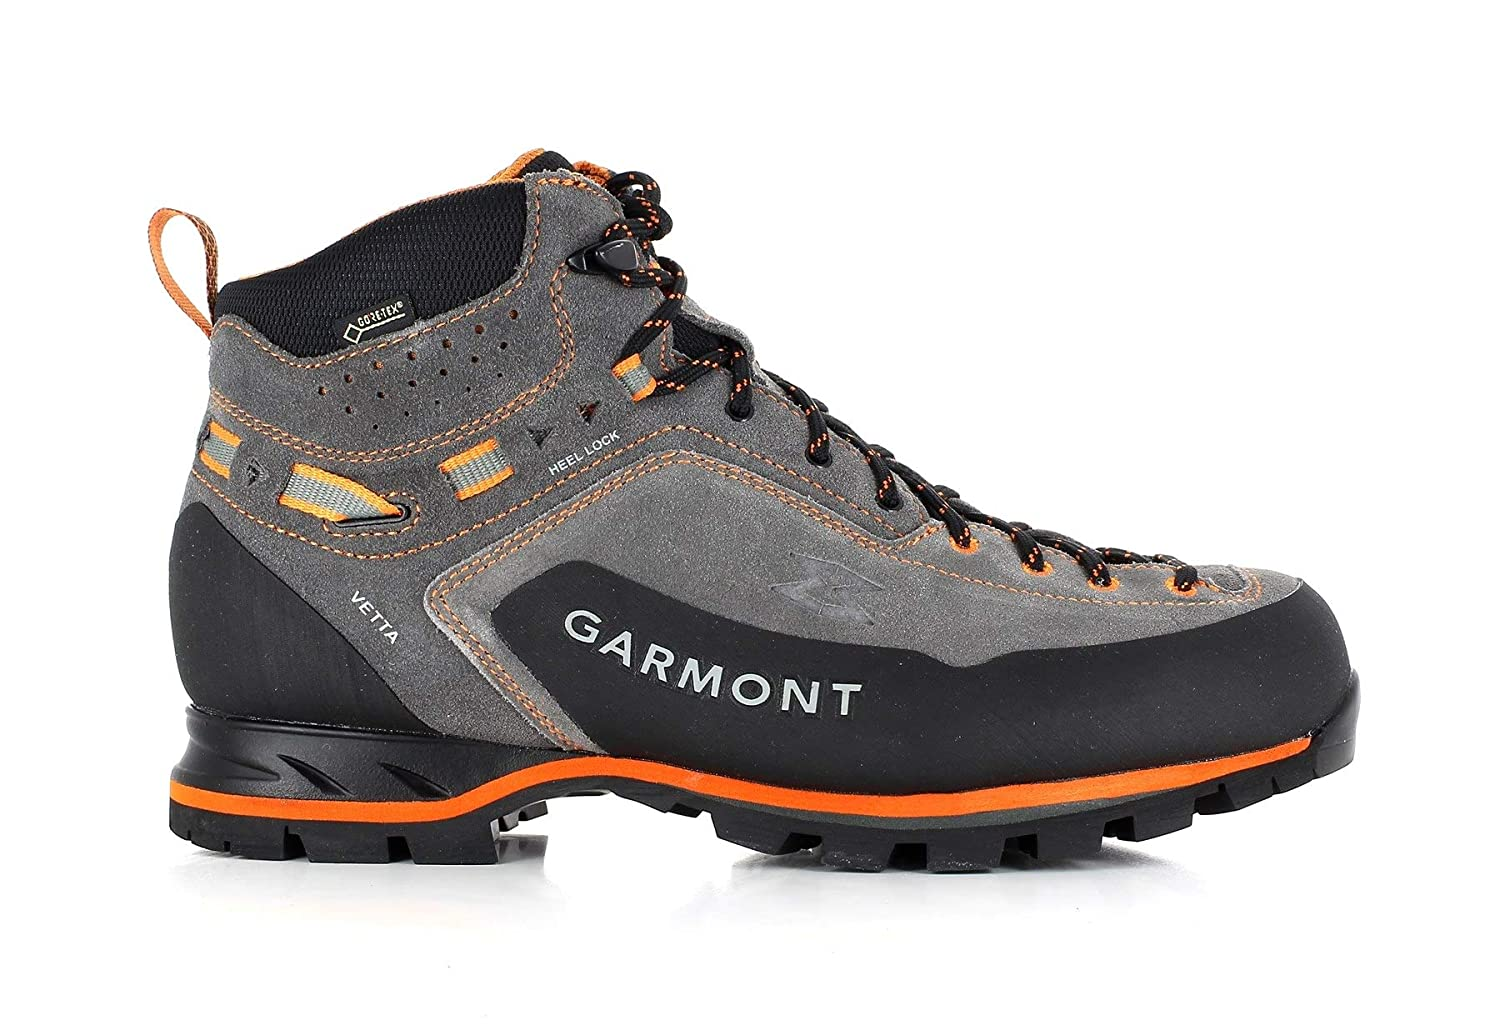 Garmont Vetta GTX Mid Cut Shoes Herren Dark Greyorange 2019